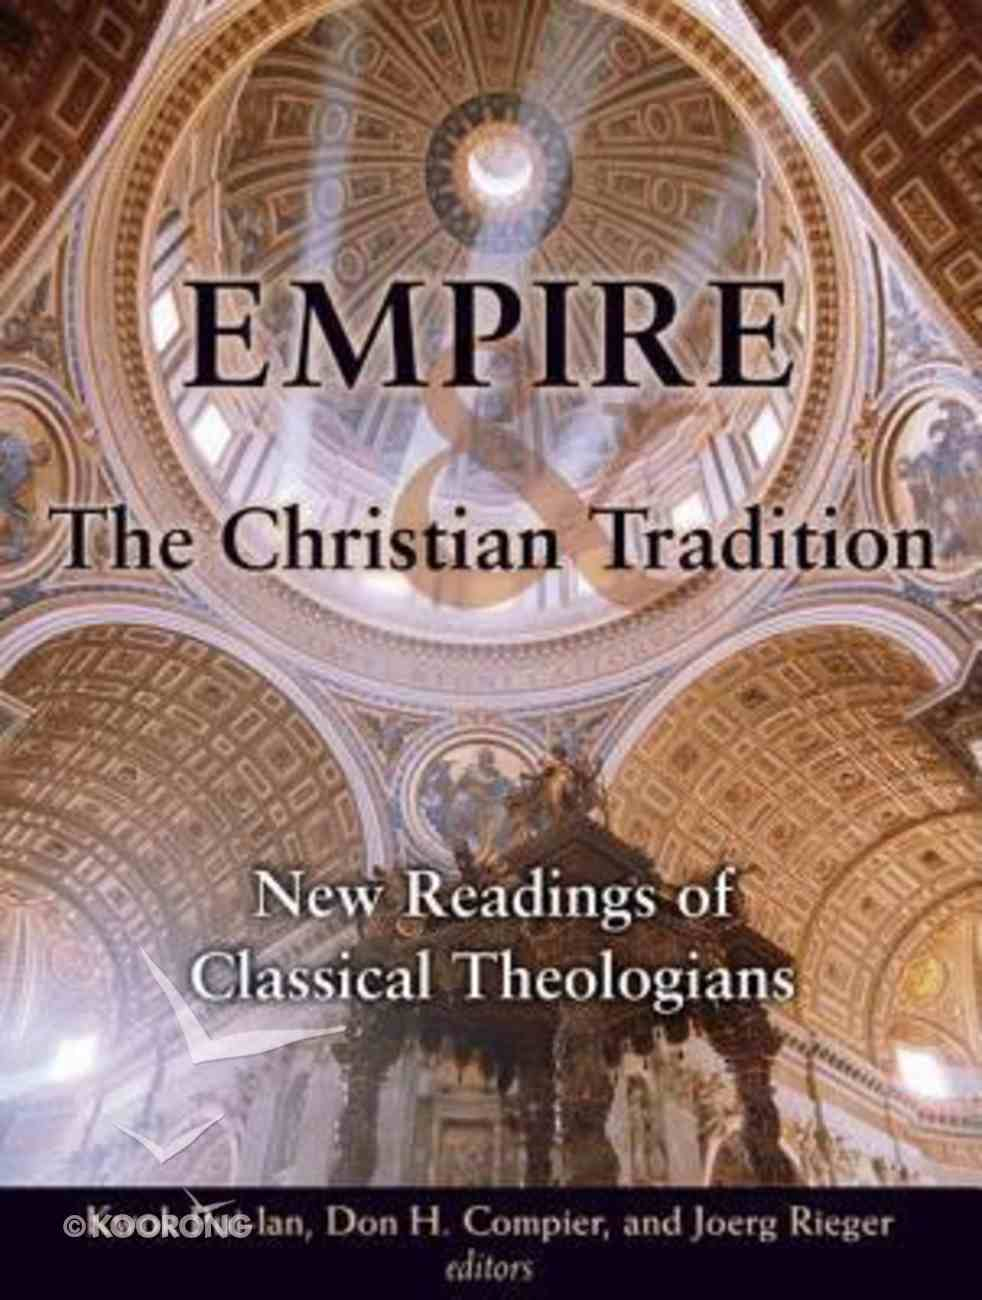 Empire and the Christian Tradition Paperback